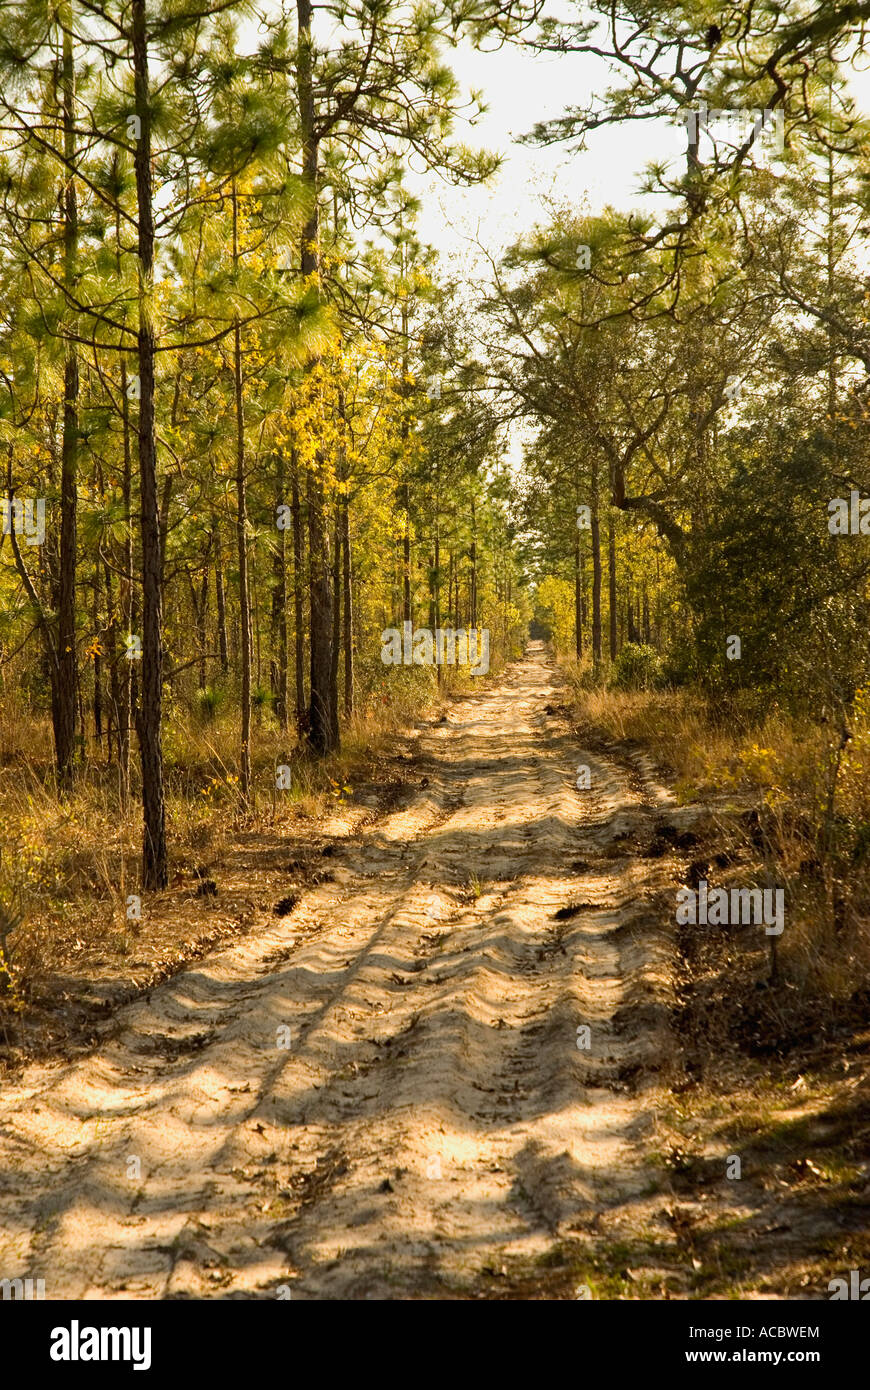 Sand forest road Gold Head Branch State Park Florida - Stock Image